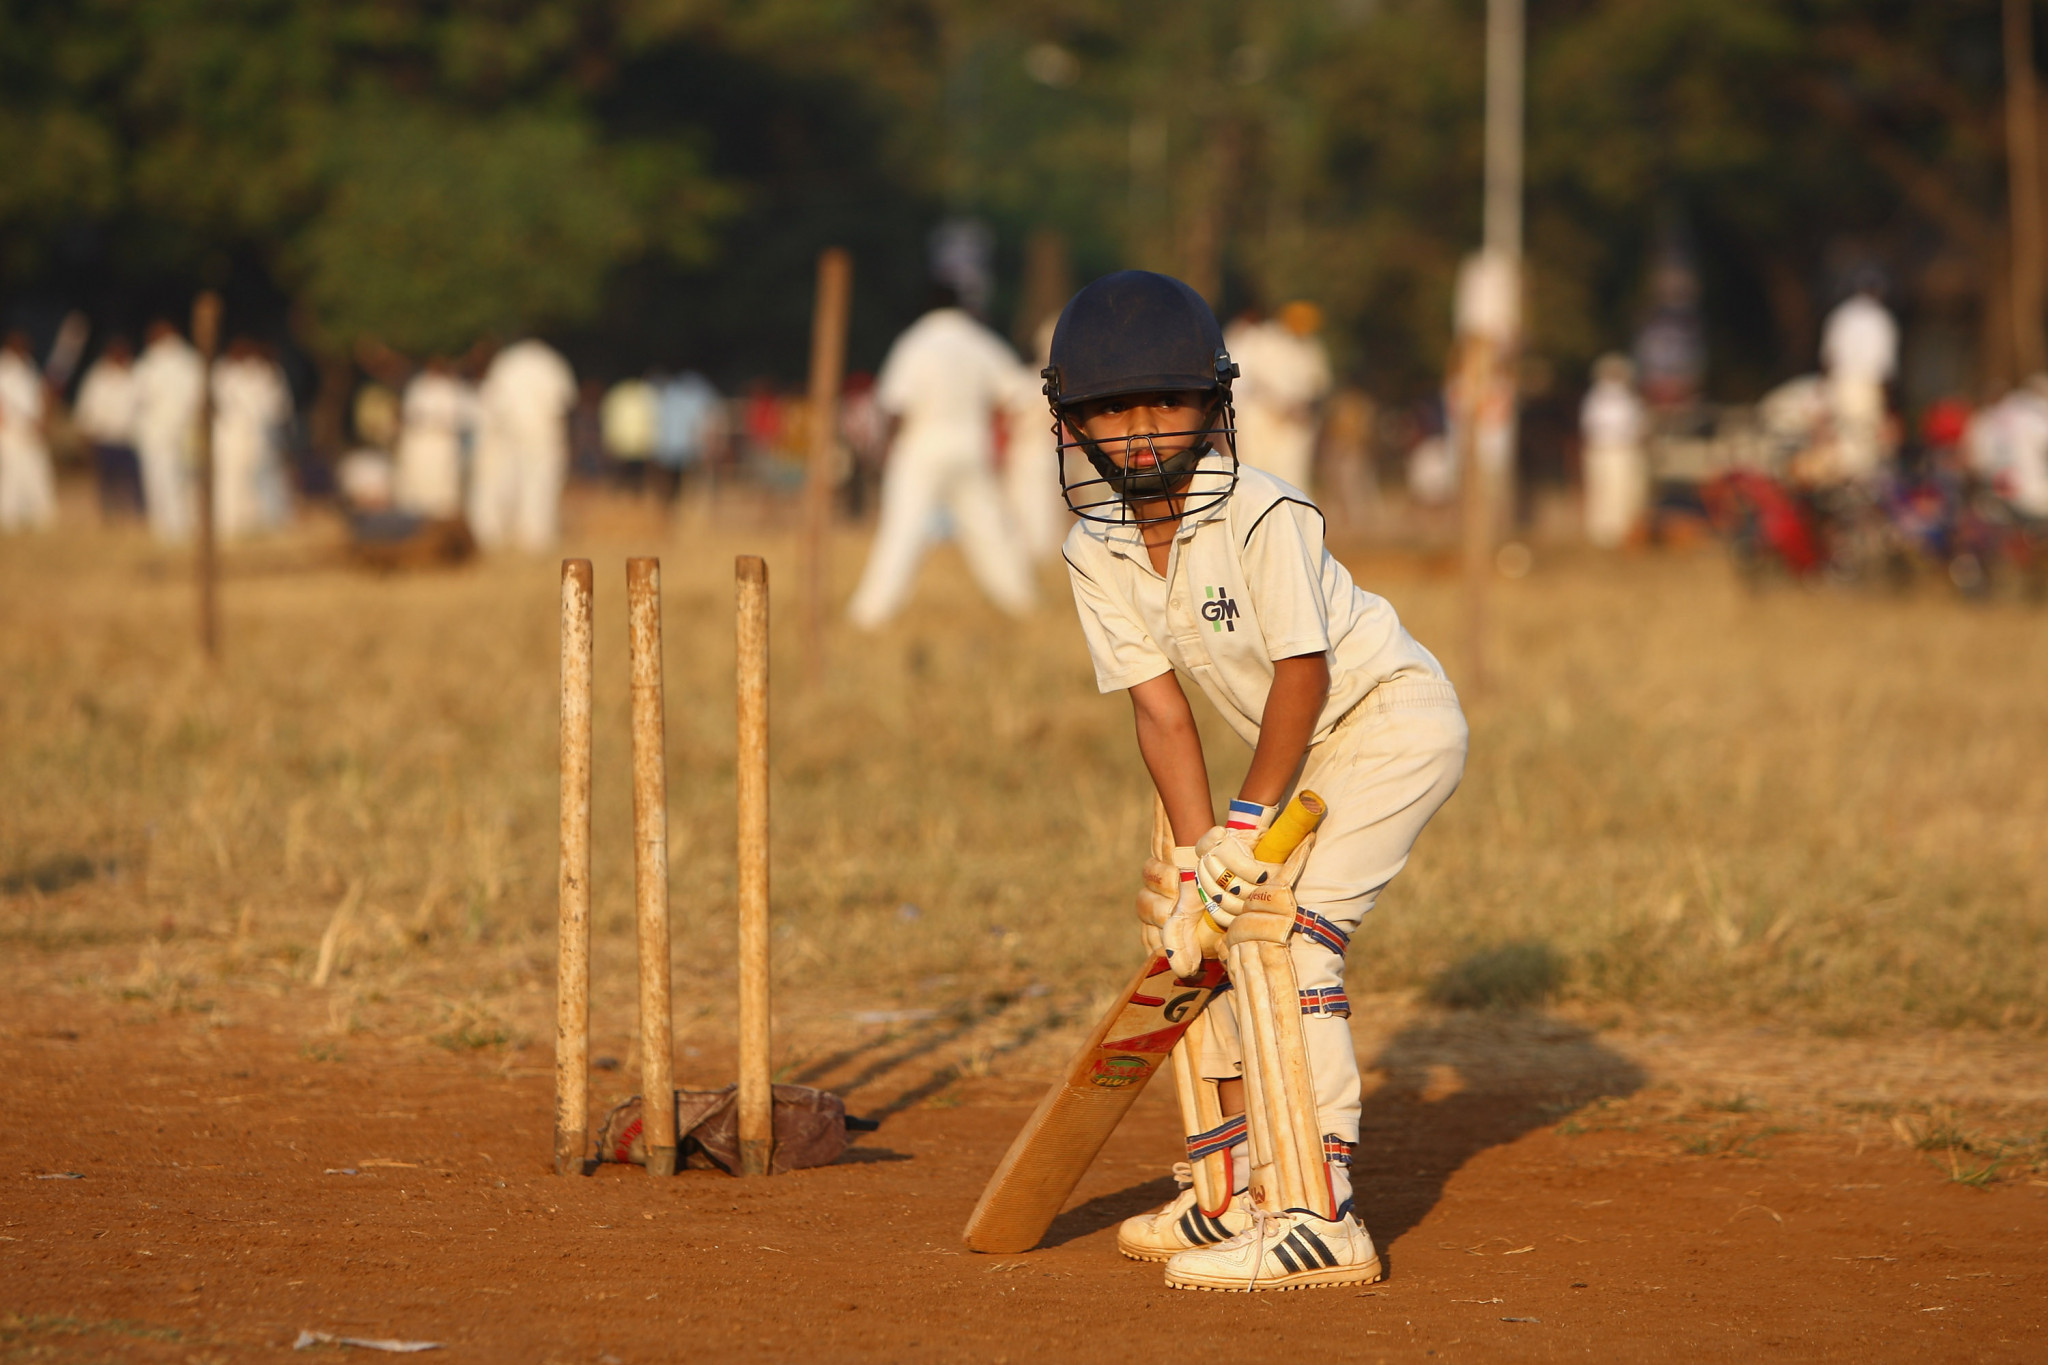 Cricket is immensely popular in India, an untapped market for the Olympic Movement ©Getty Images